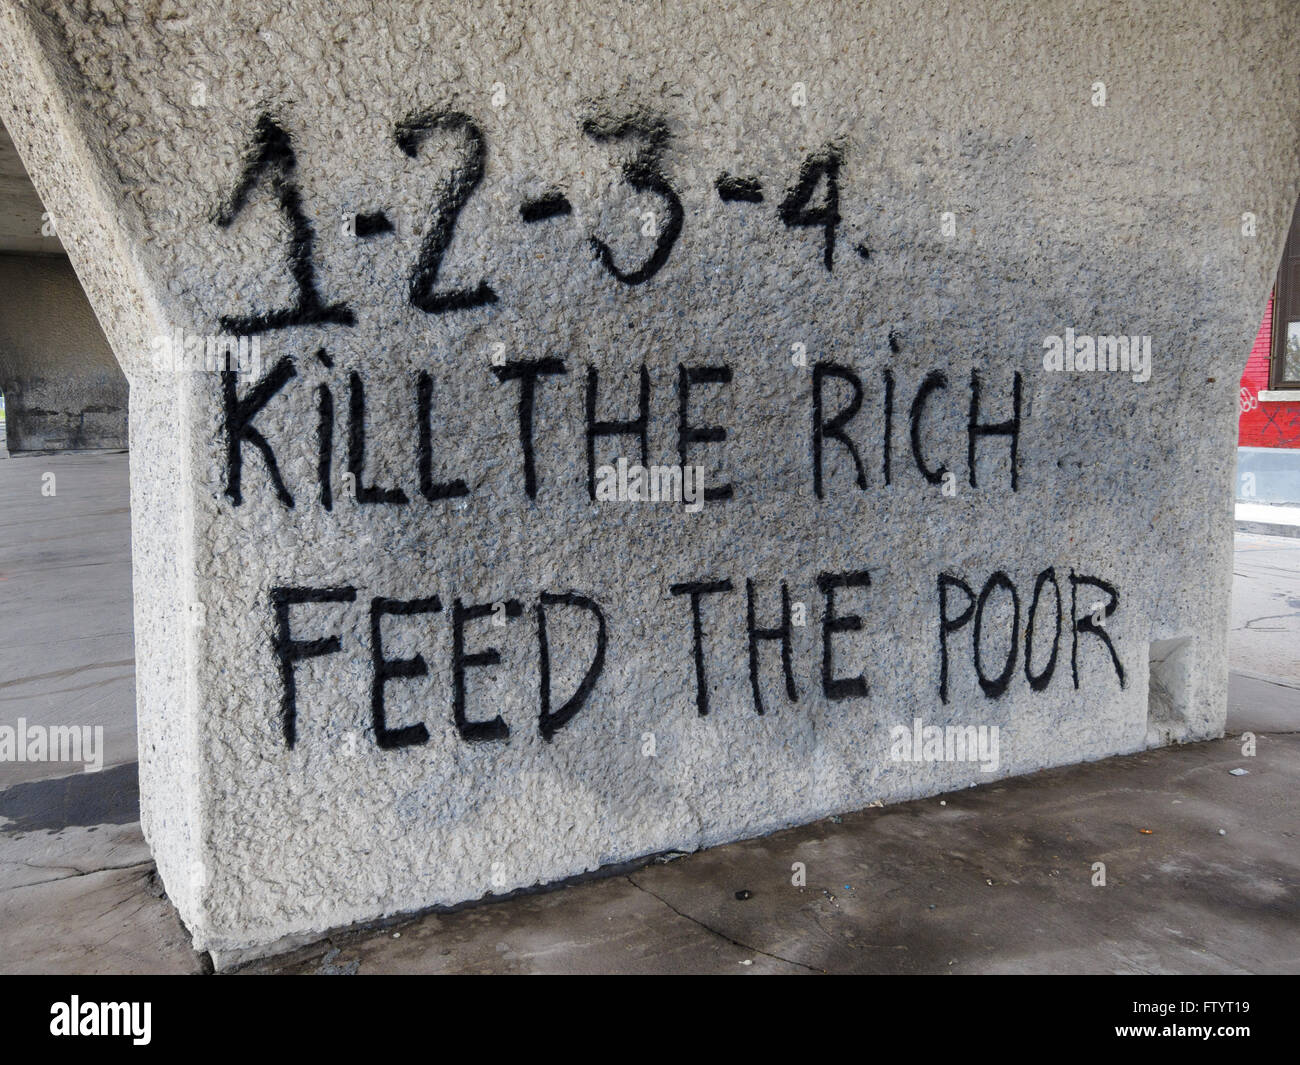 1-2-3-4, Kill the Rich, Feed the Poor. Graffiti protesting income inequality. Montreal, Quebec, Canada. - Stock Image